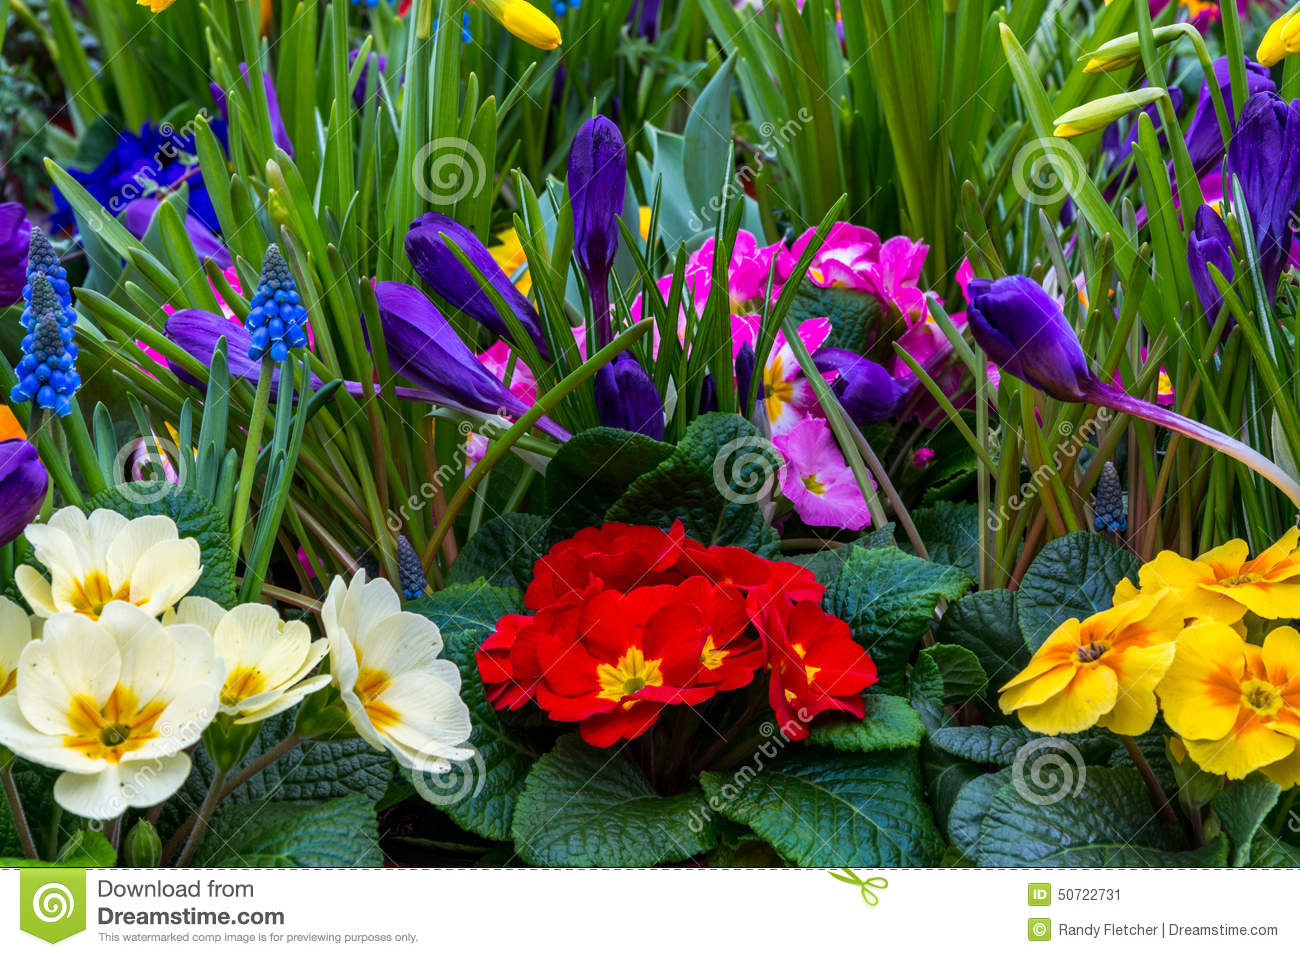 Spring garden flowers stock image. Image of color, flowering - 50722731